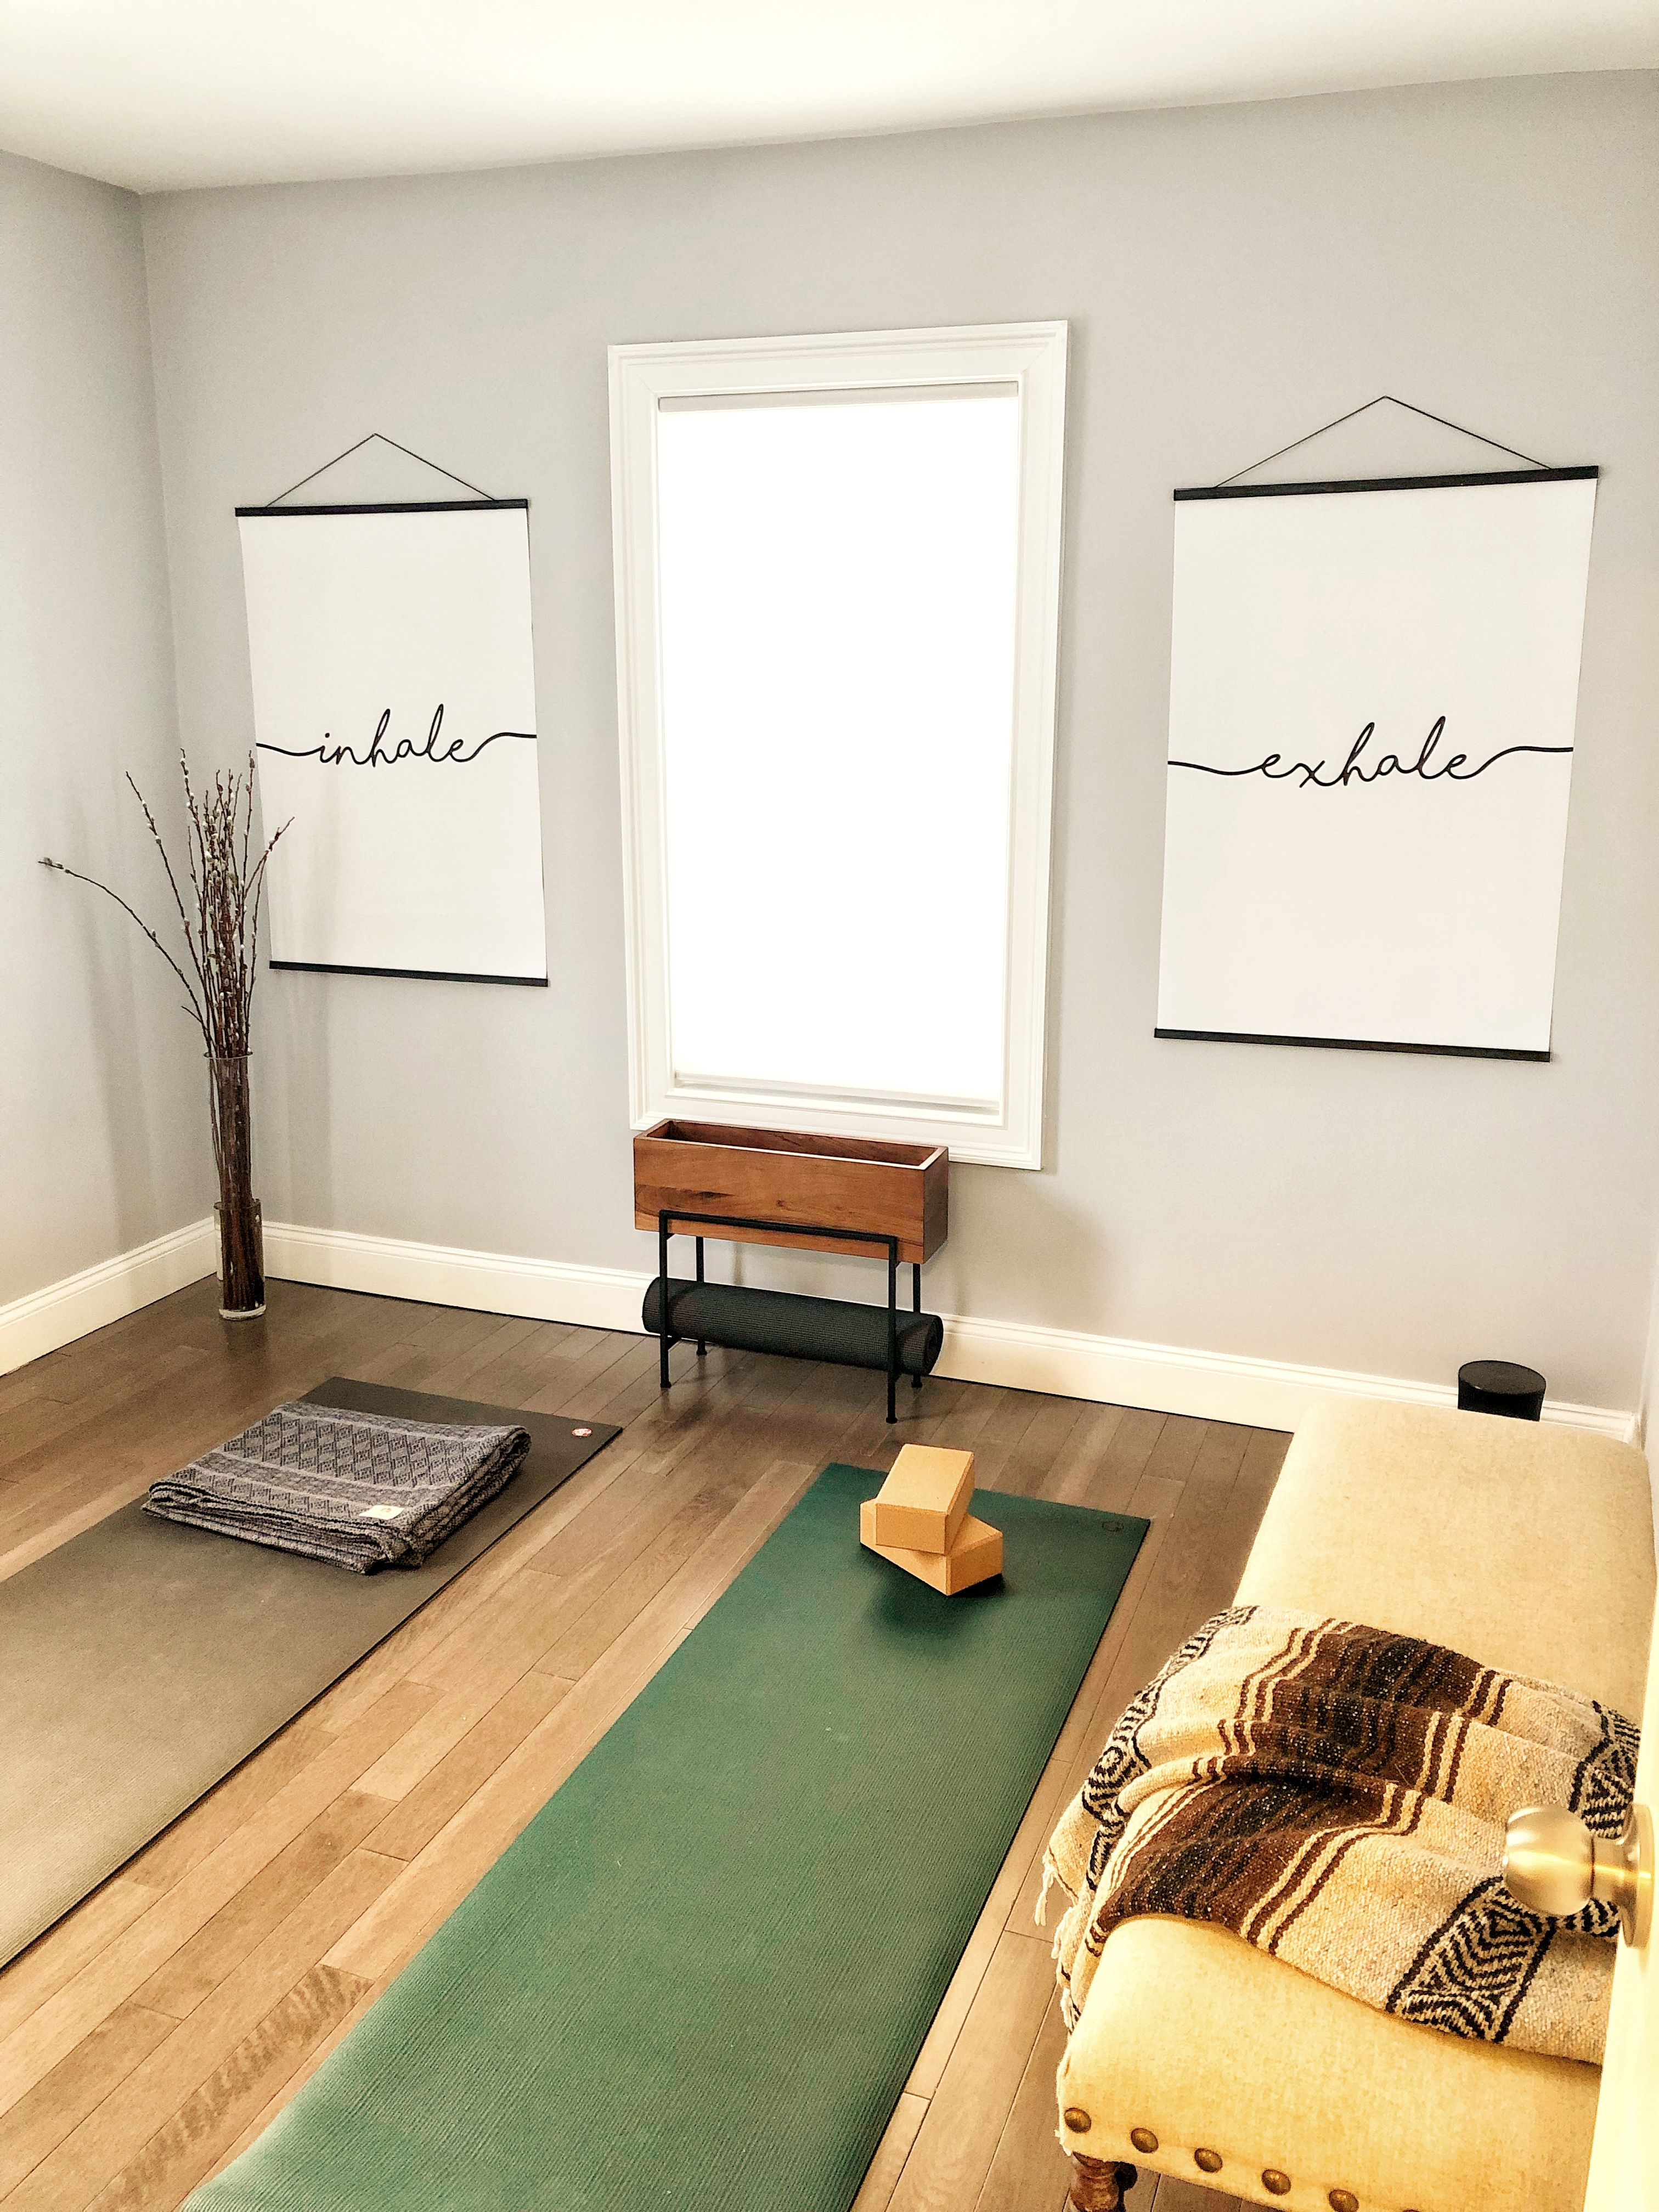 Home Yoga Studio Home Yoga Room Yoga Studio Home Yoga Room Design